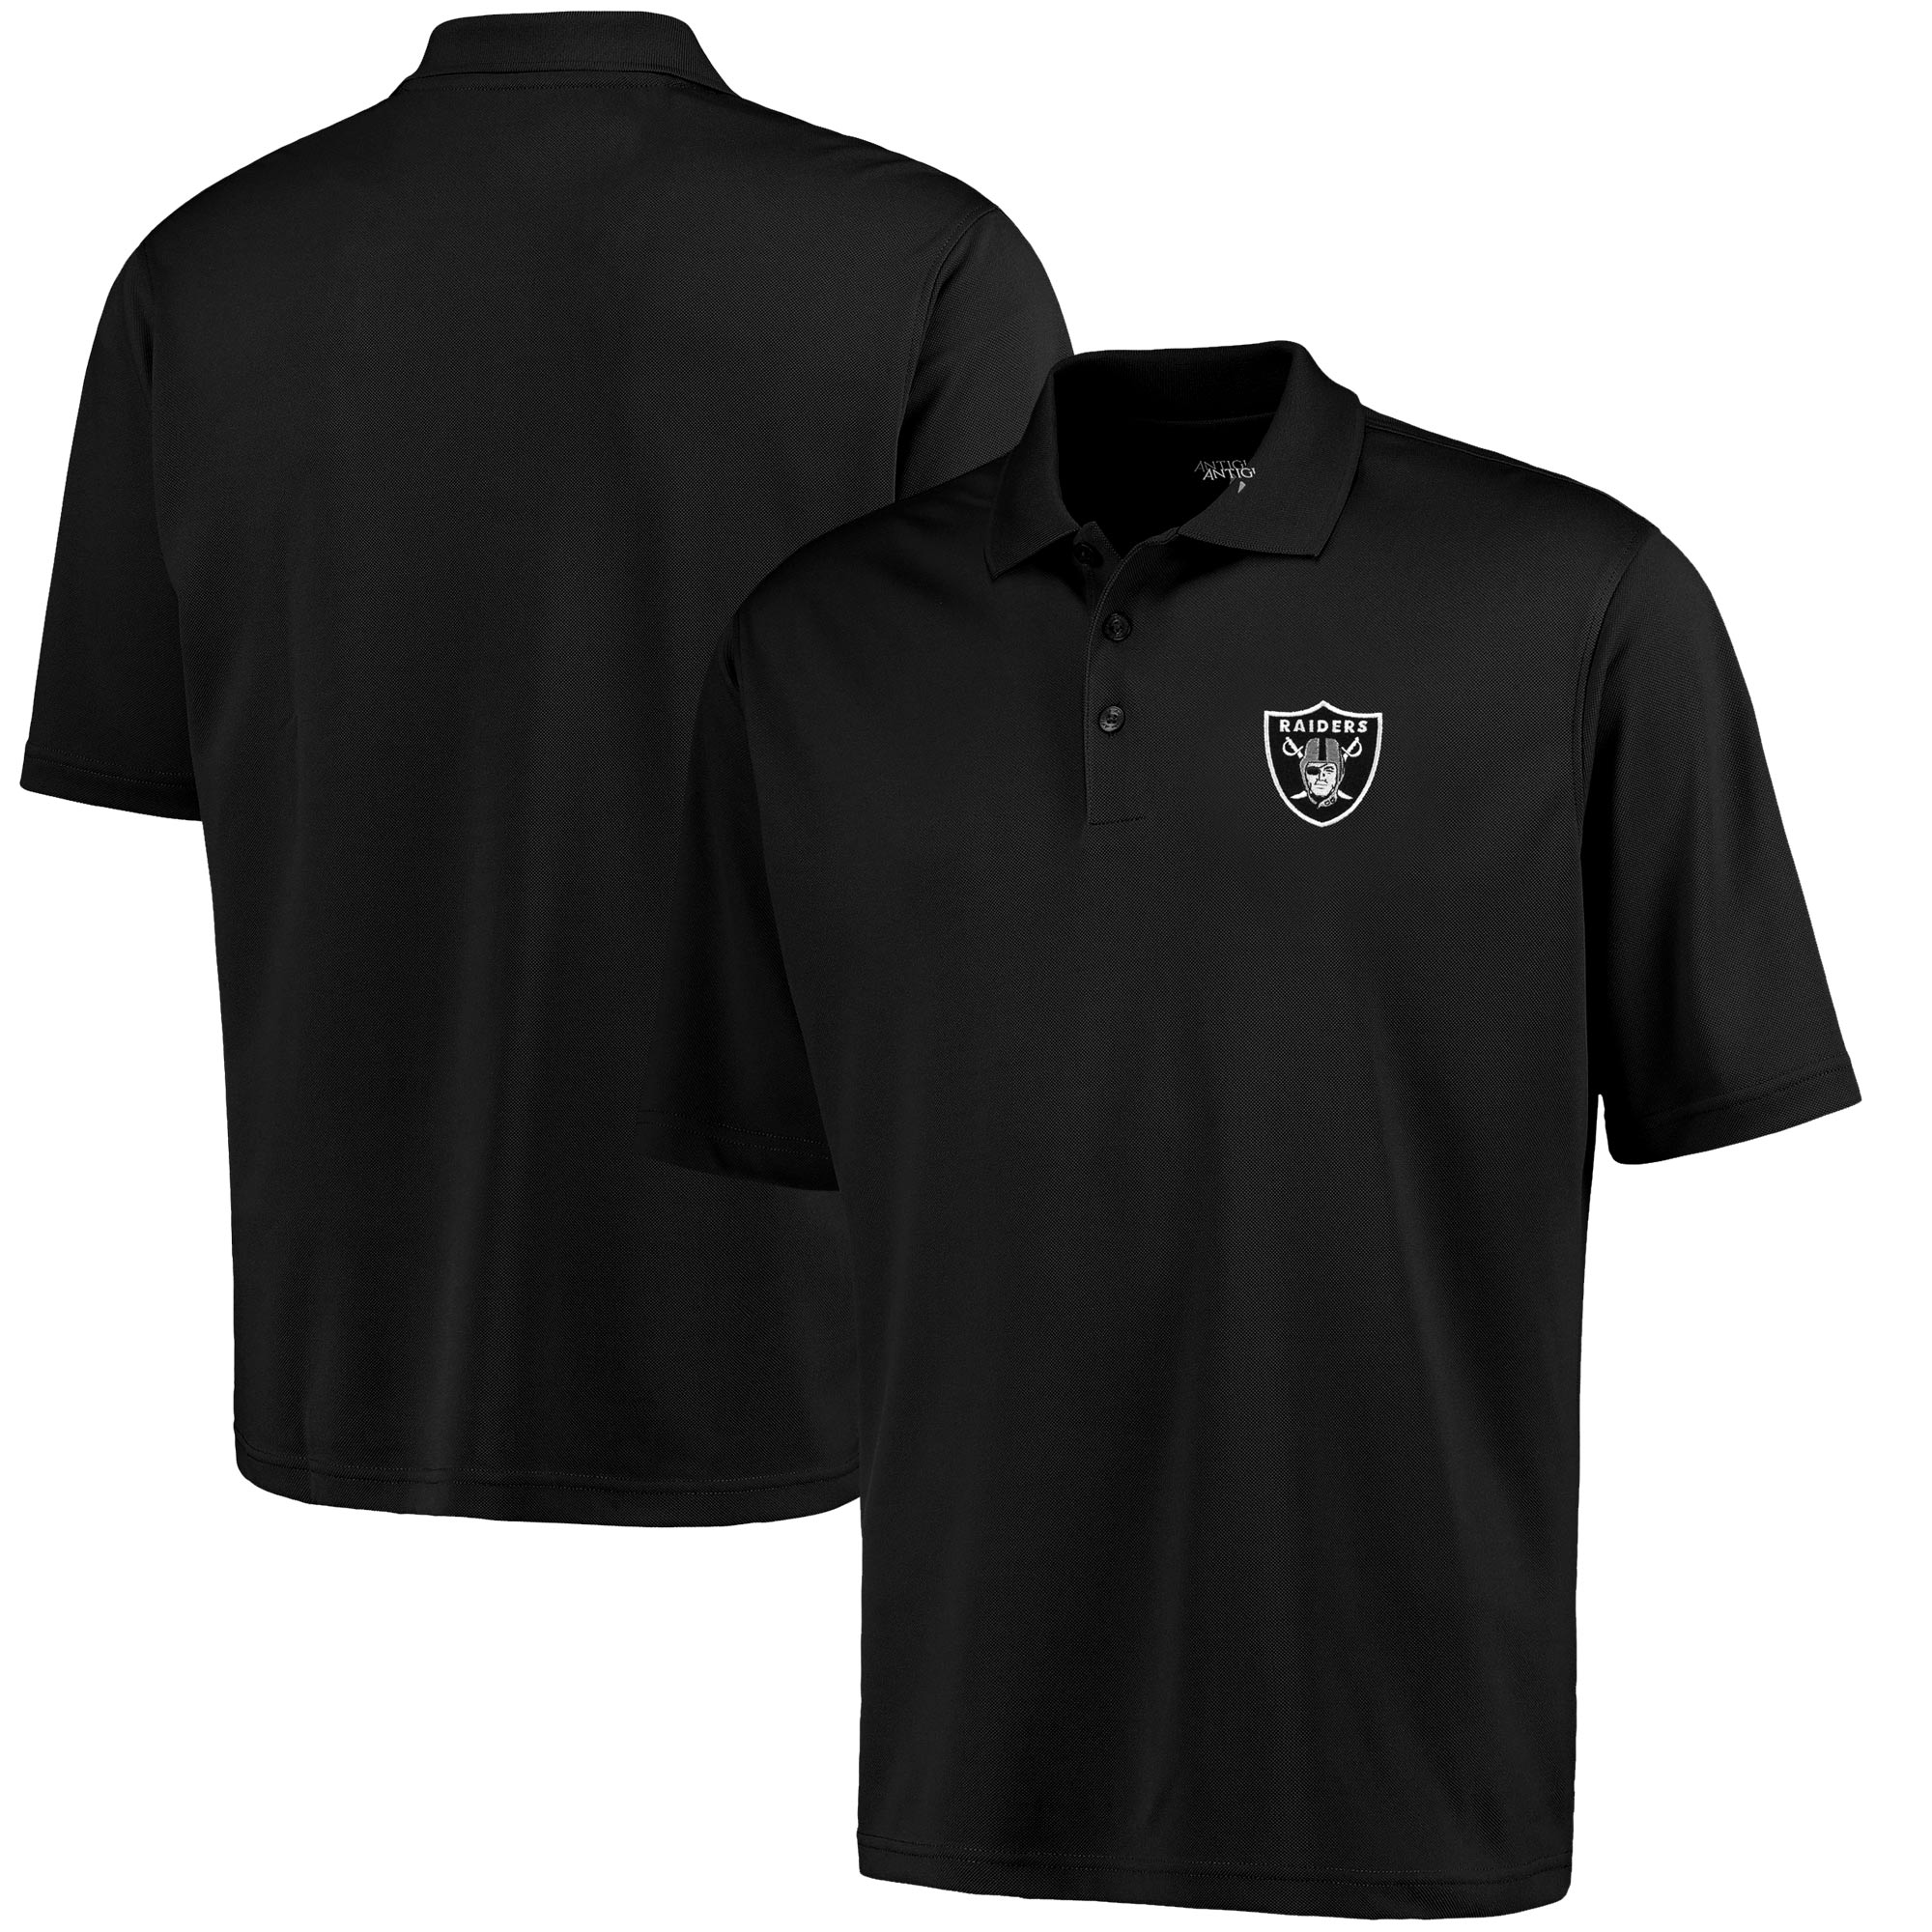 Oakland Raiders Antigua Pique Xtra-Lite Polo - Black